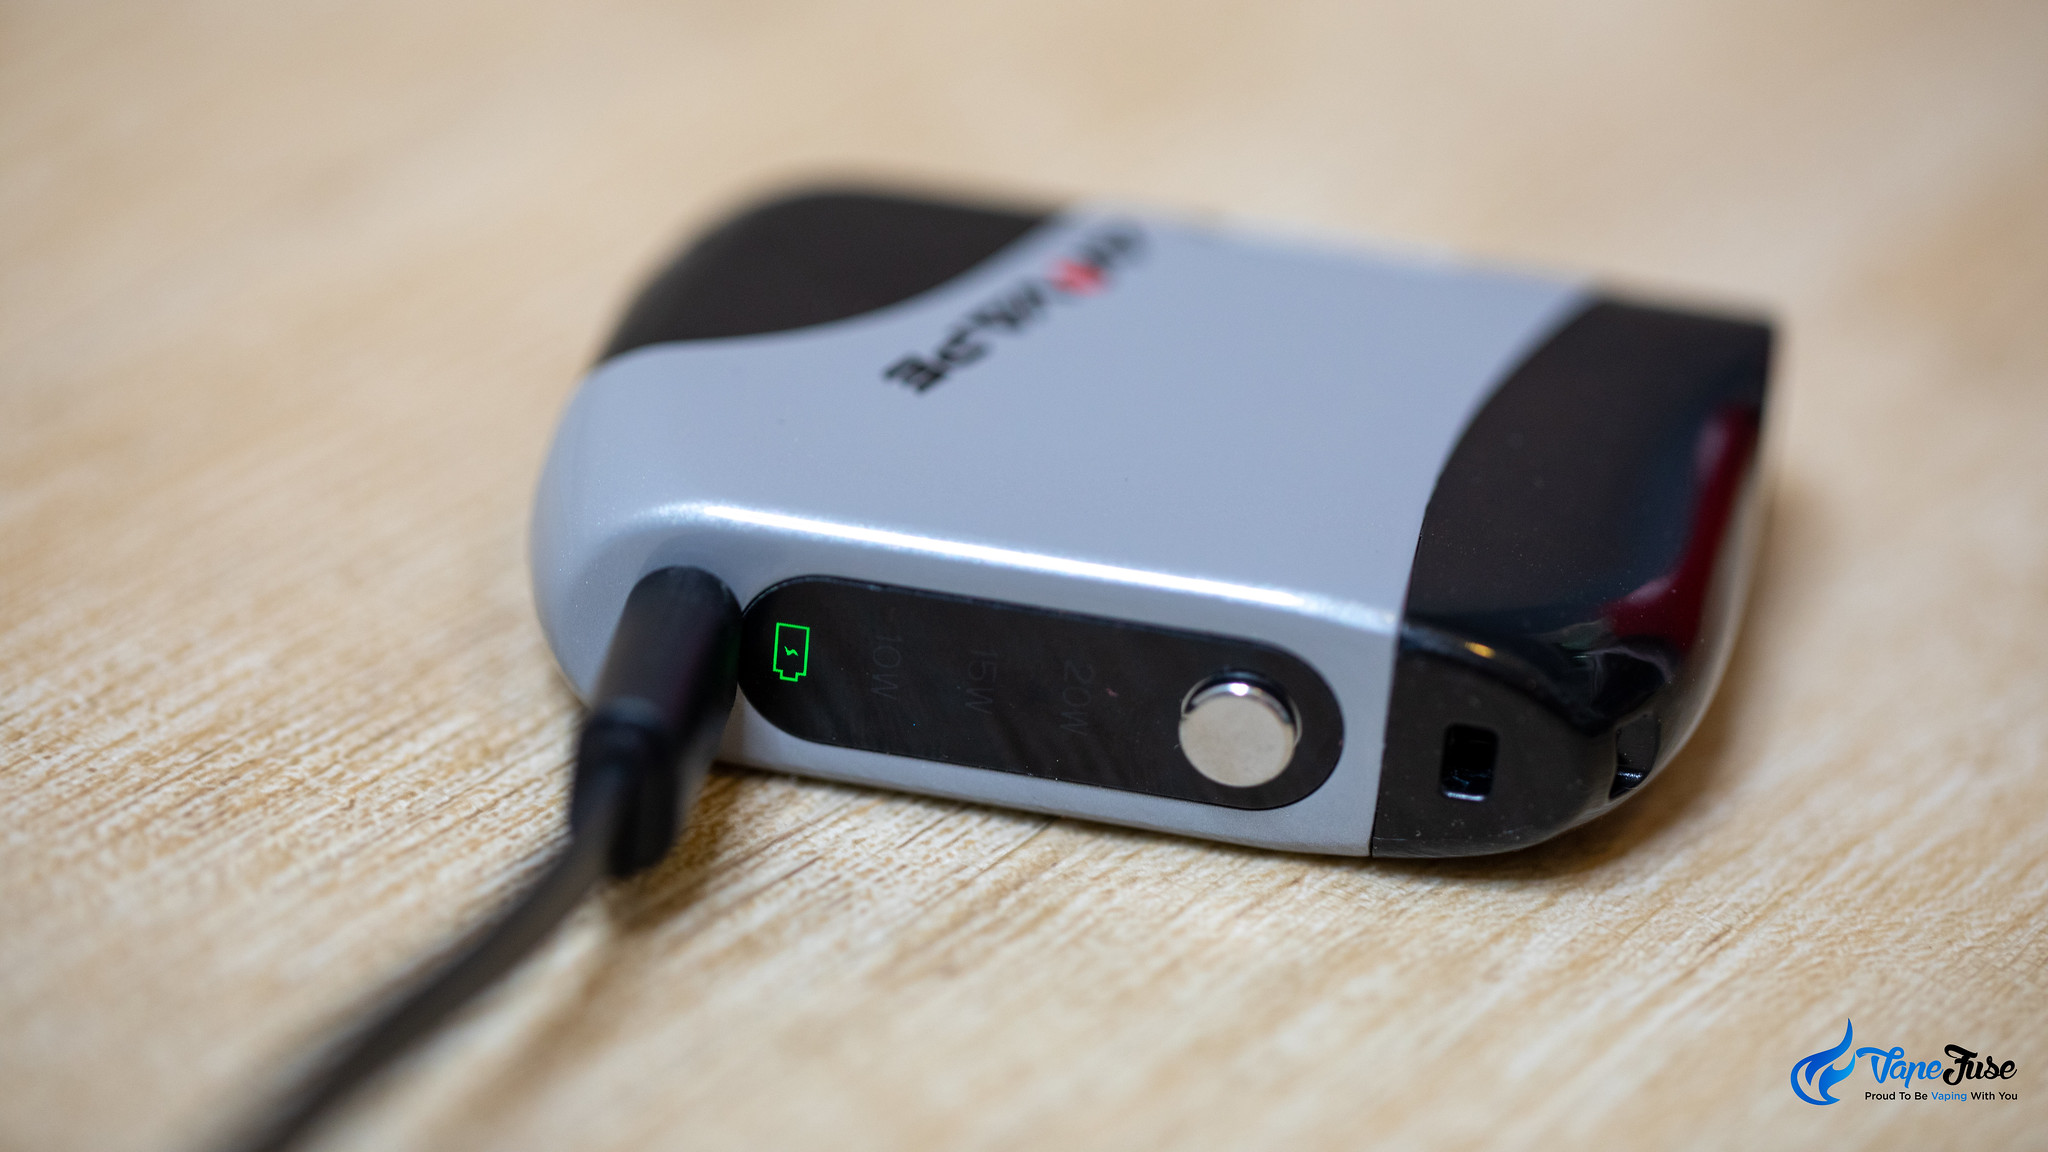 Aovape cRoll Oil Vaporizer on the charger